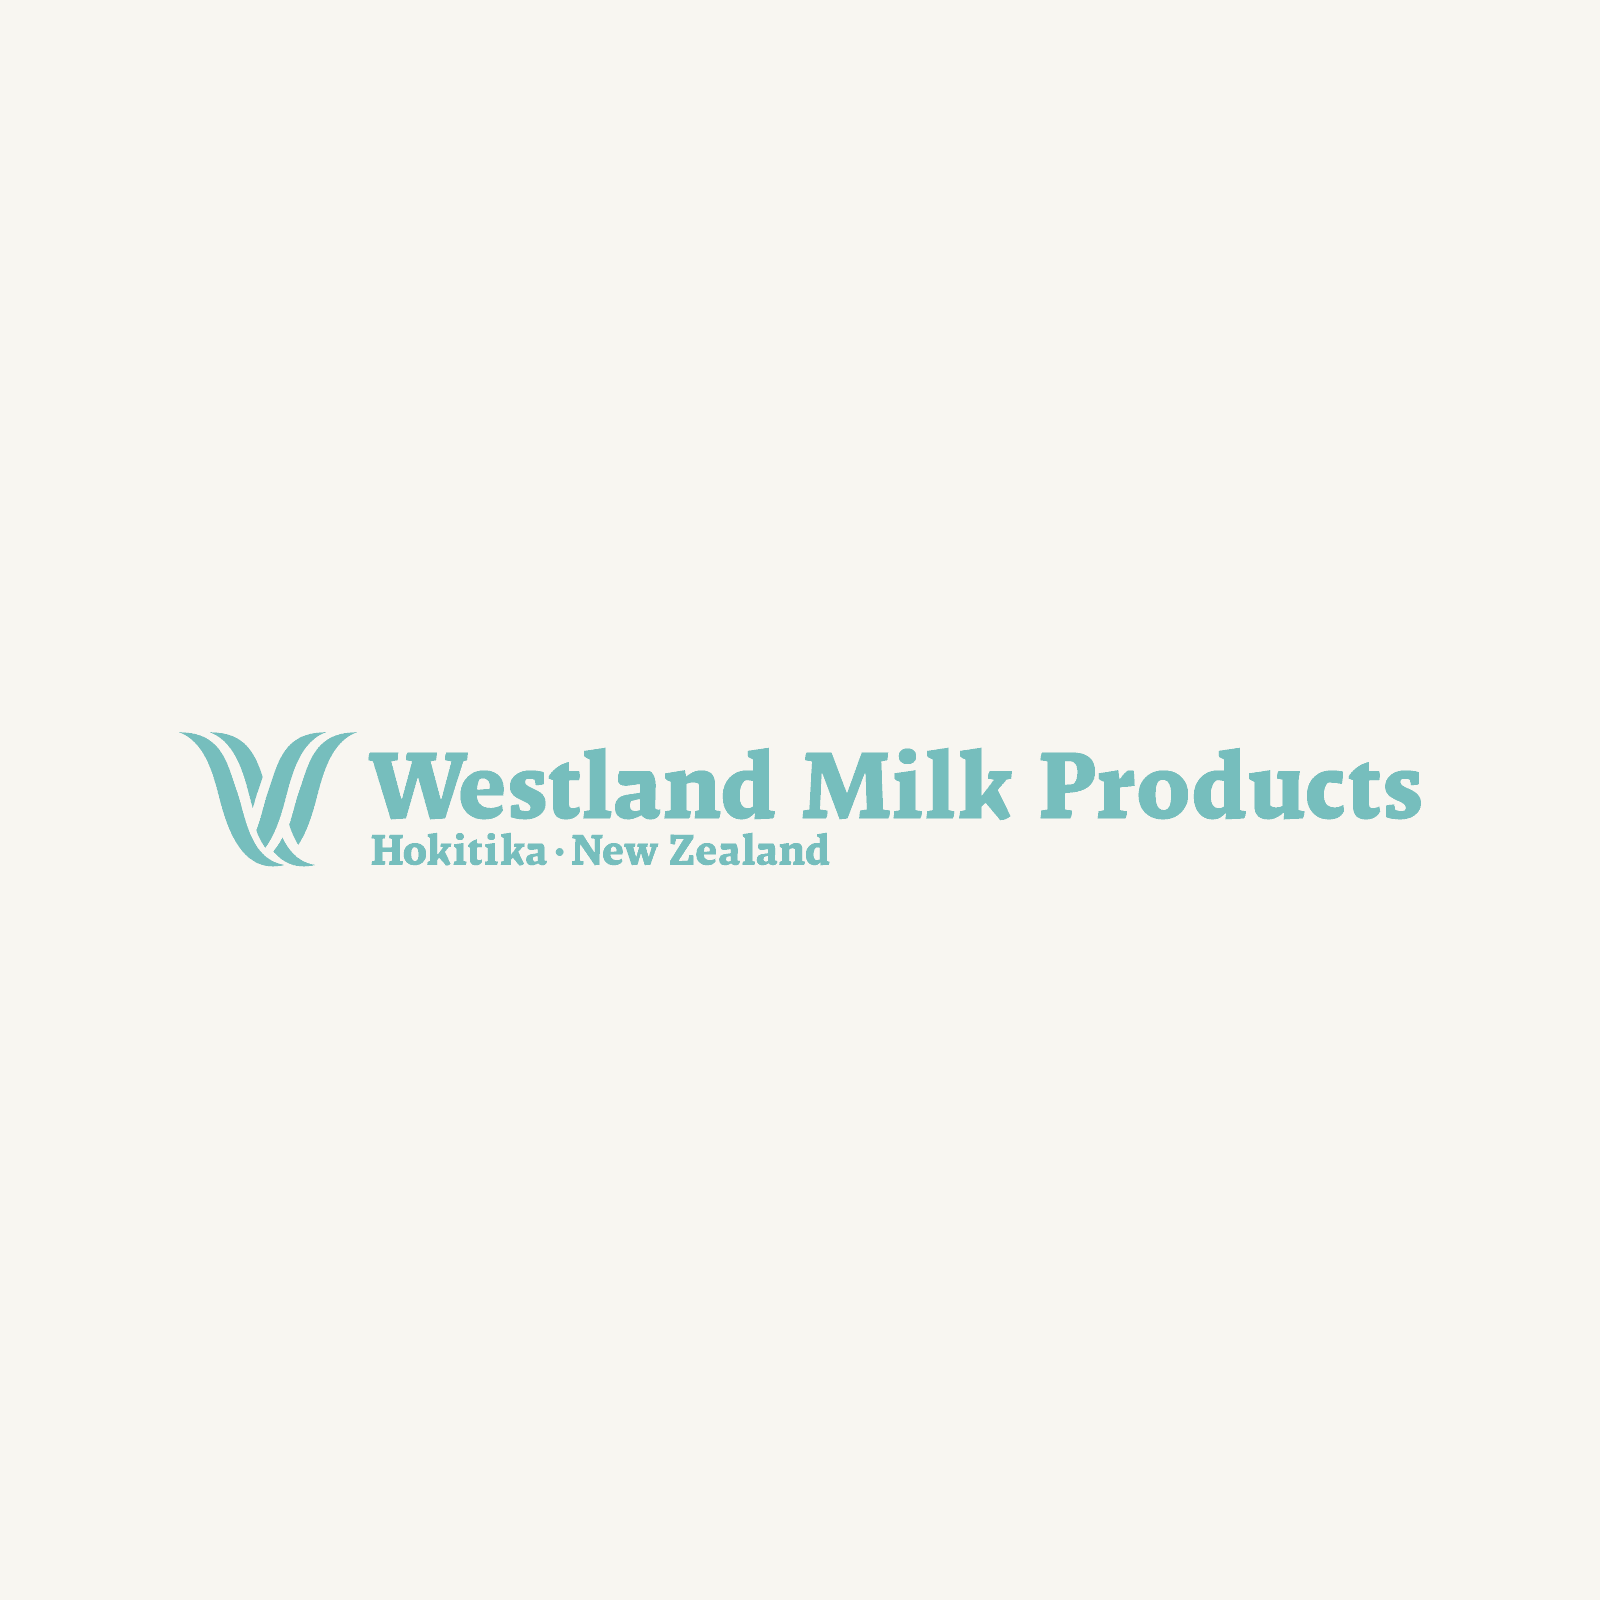 Lionel Ehinger appointed Sales & Operations Planning Manager at Westland Milk Products